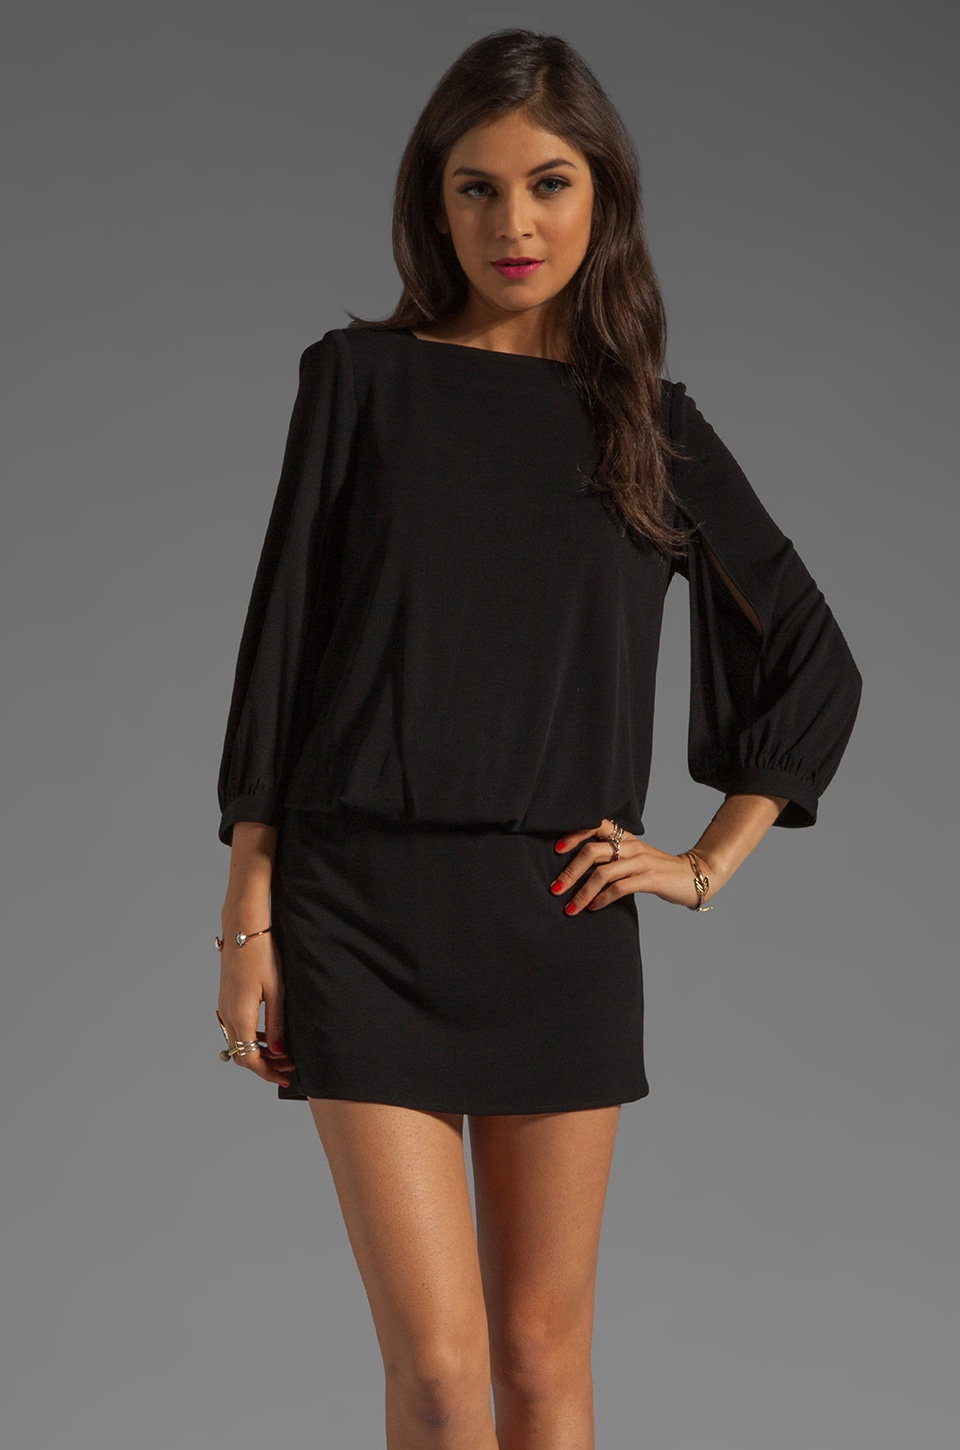 MILLY Italian Matte Jersey Carmela Dress in Black